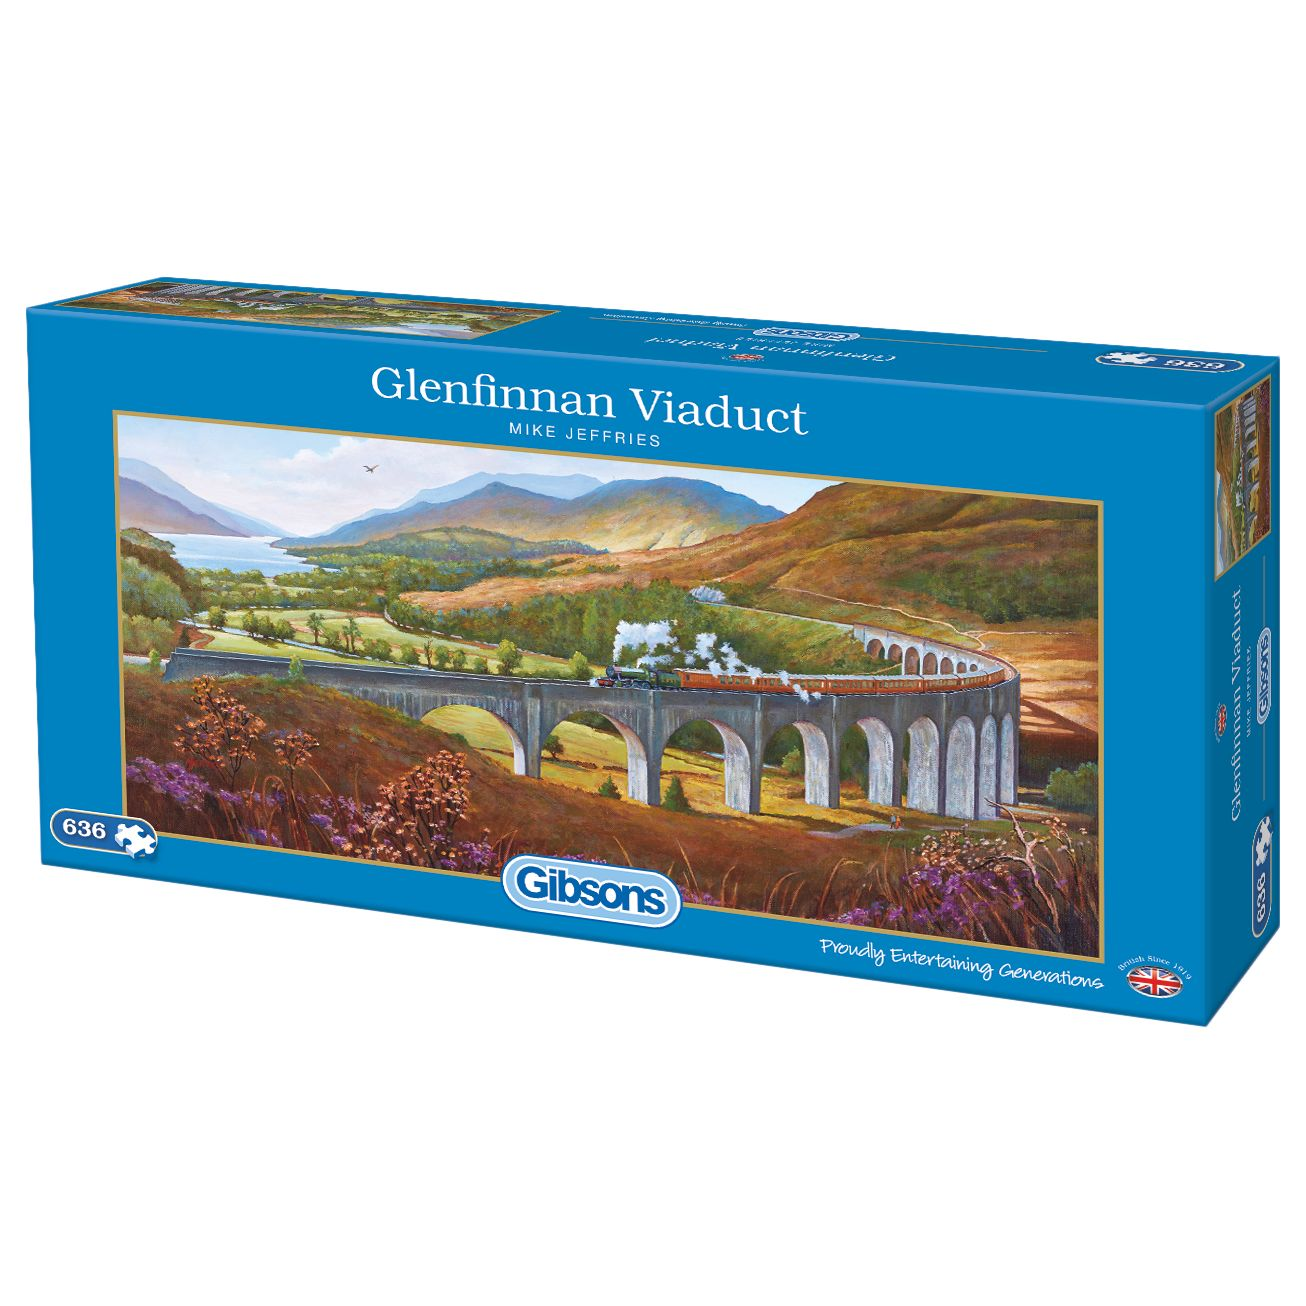 Gibsons Gibsons Glenfinnan Viaduct Jigsaw Puzzle, 636 Pieces